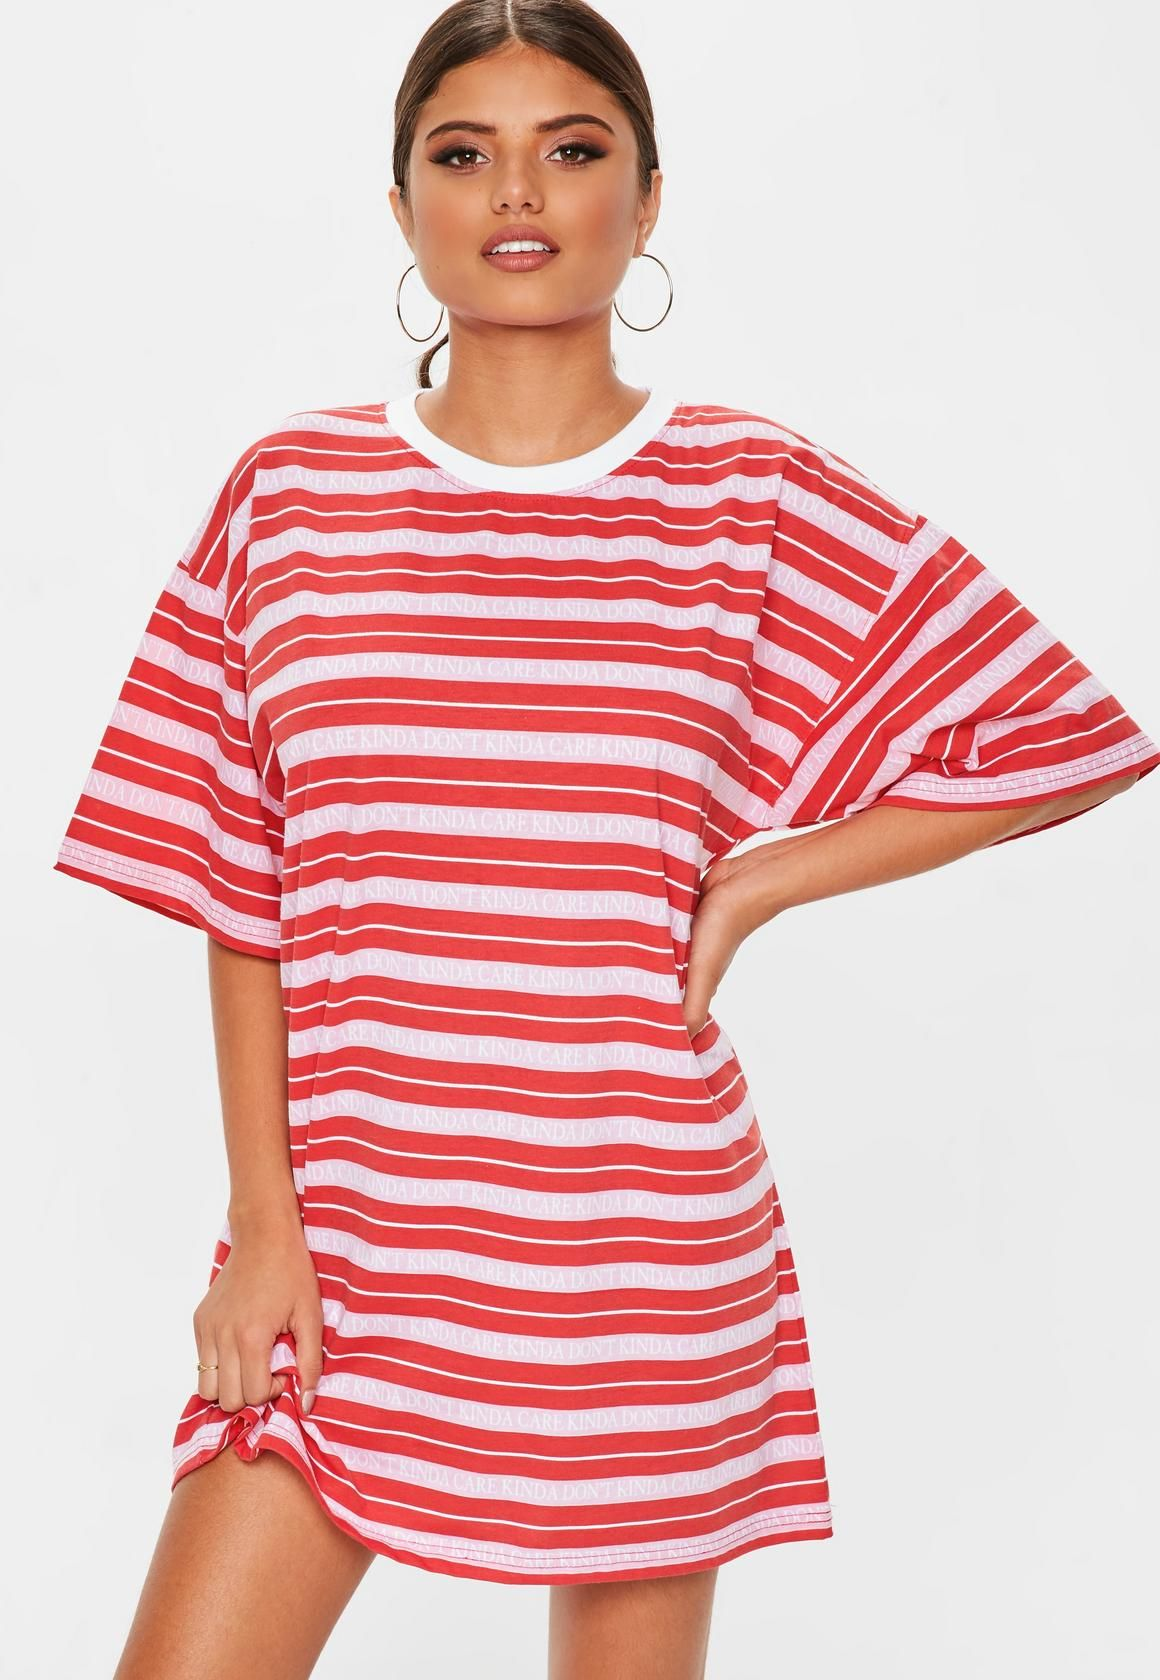 Missguided - Red Oversized TShirt Dress Kinda Care 6b5c56a0b1